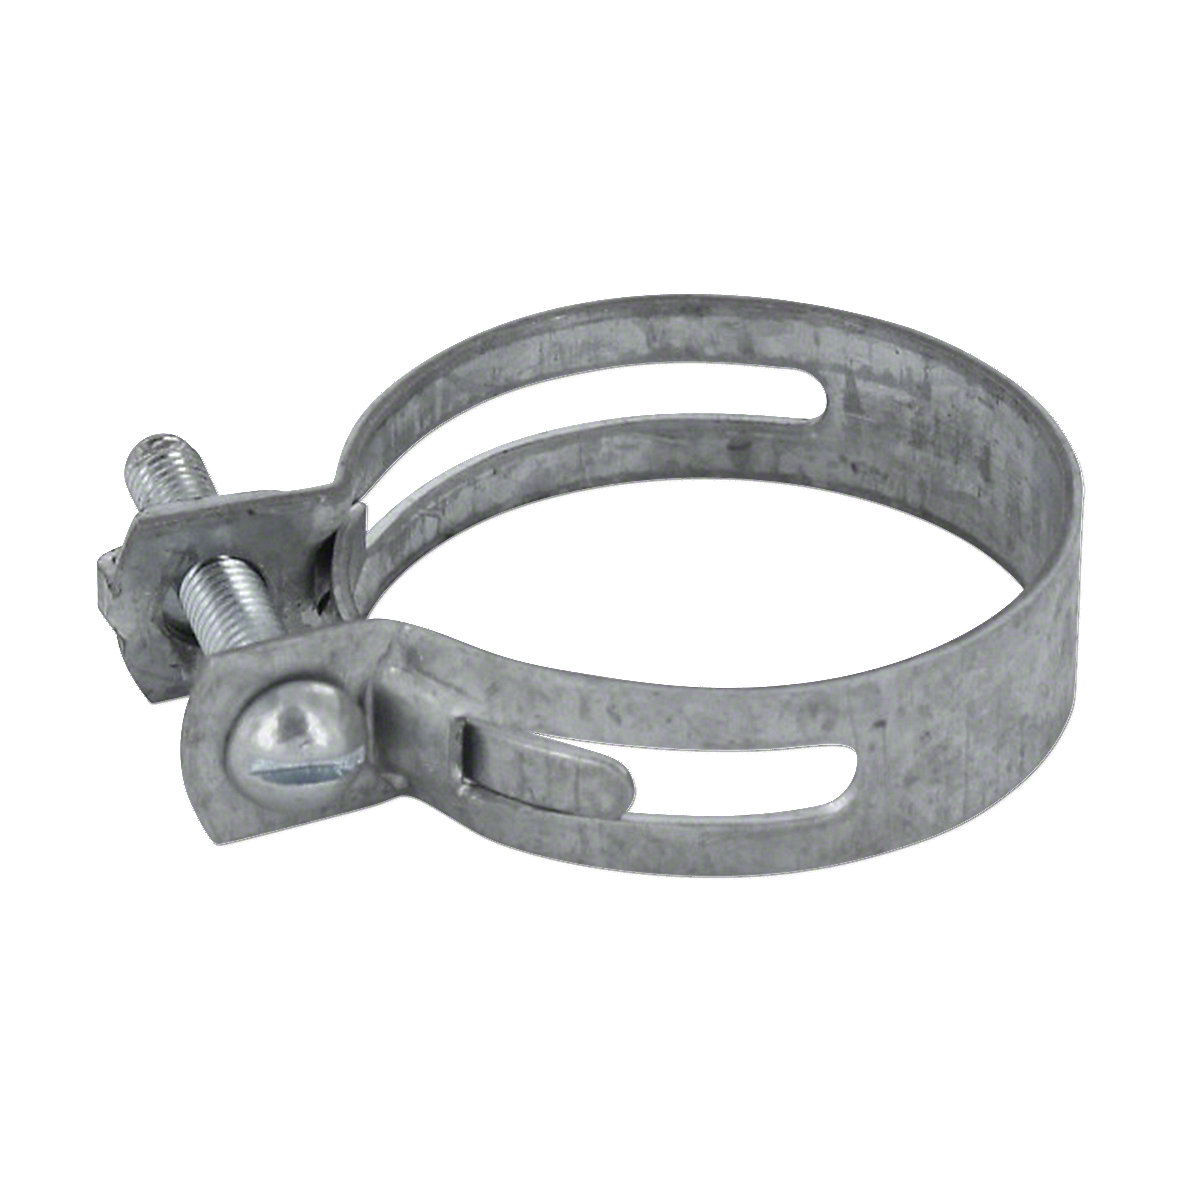 Air Cleaner Hose Clamp For Allis Chalmers: G.